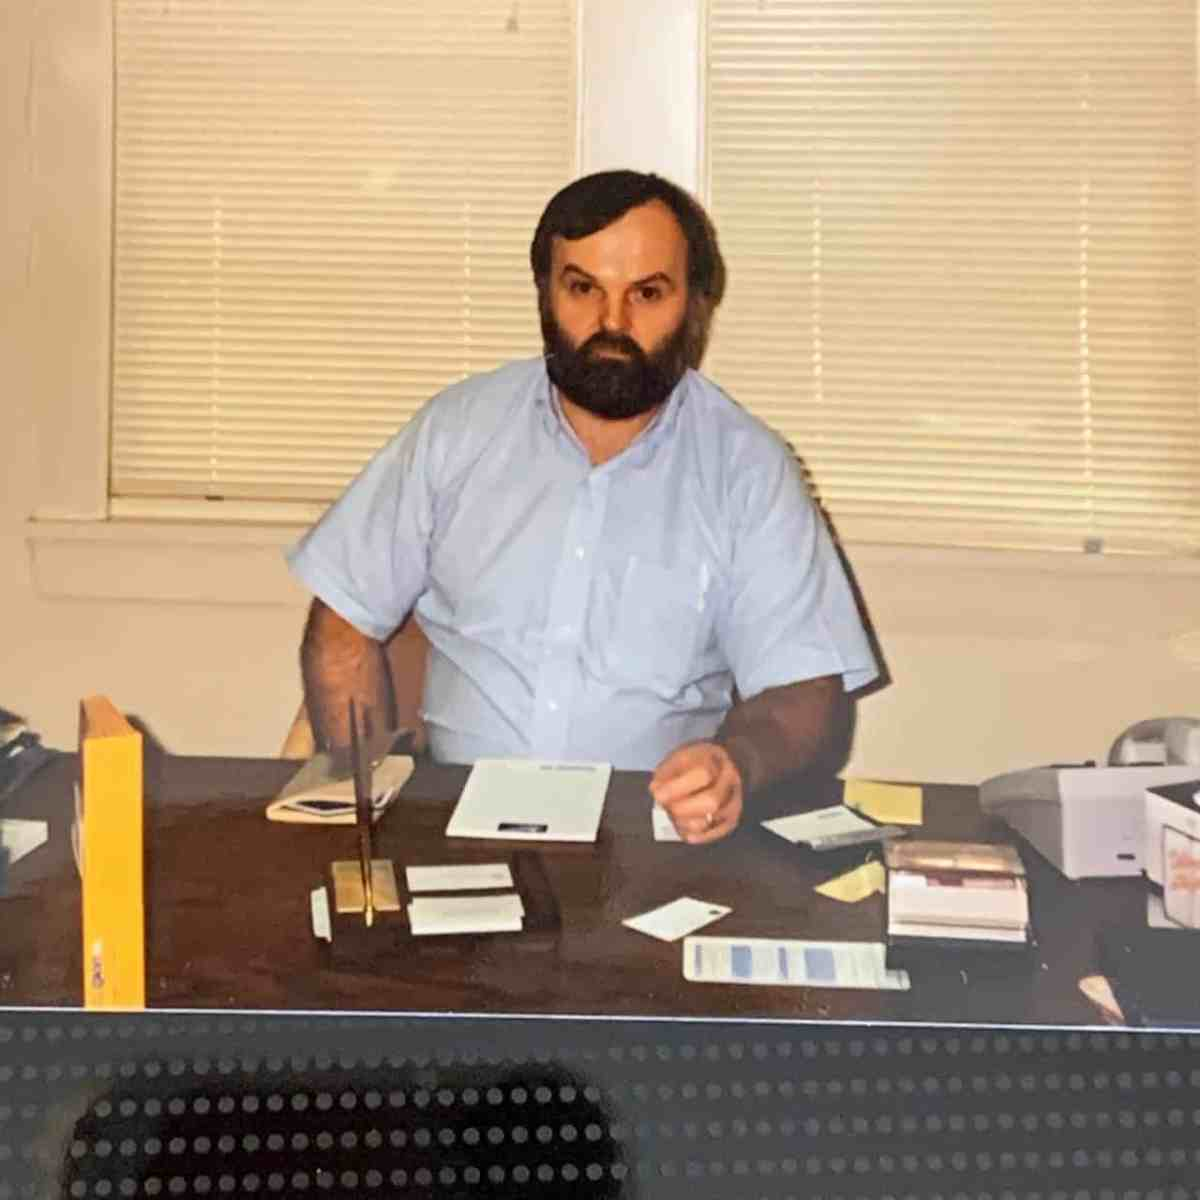 We see James Hill, a wide-eyed, curious looking Canadian doctor with a thick beard and dollop of black hair, at his desk prior to his incarceration in a U.S. federal prison in 2007.